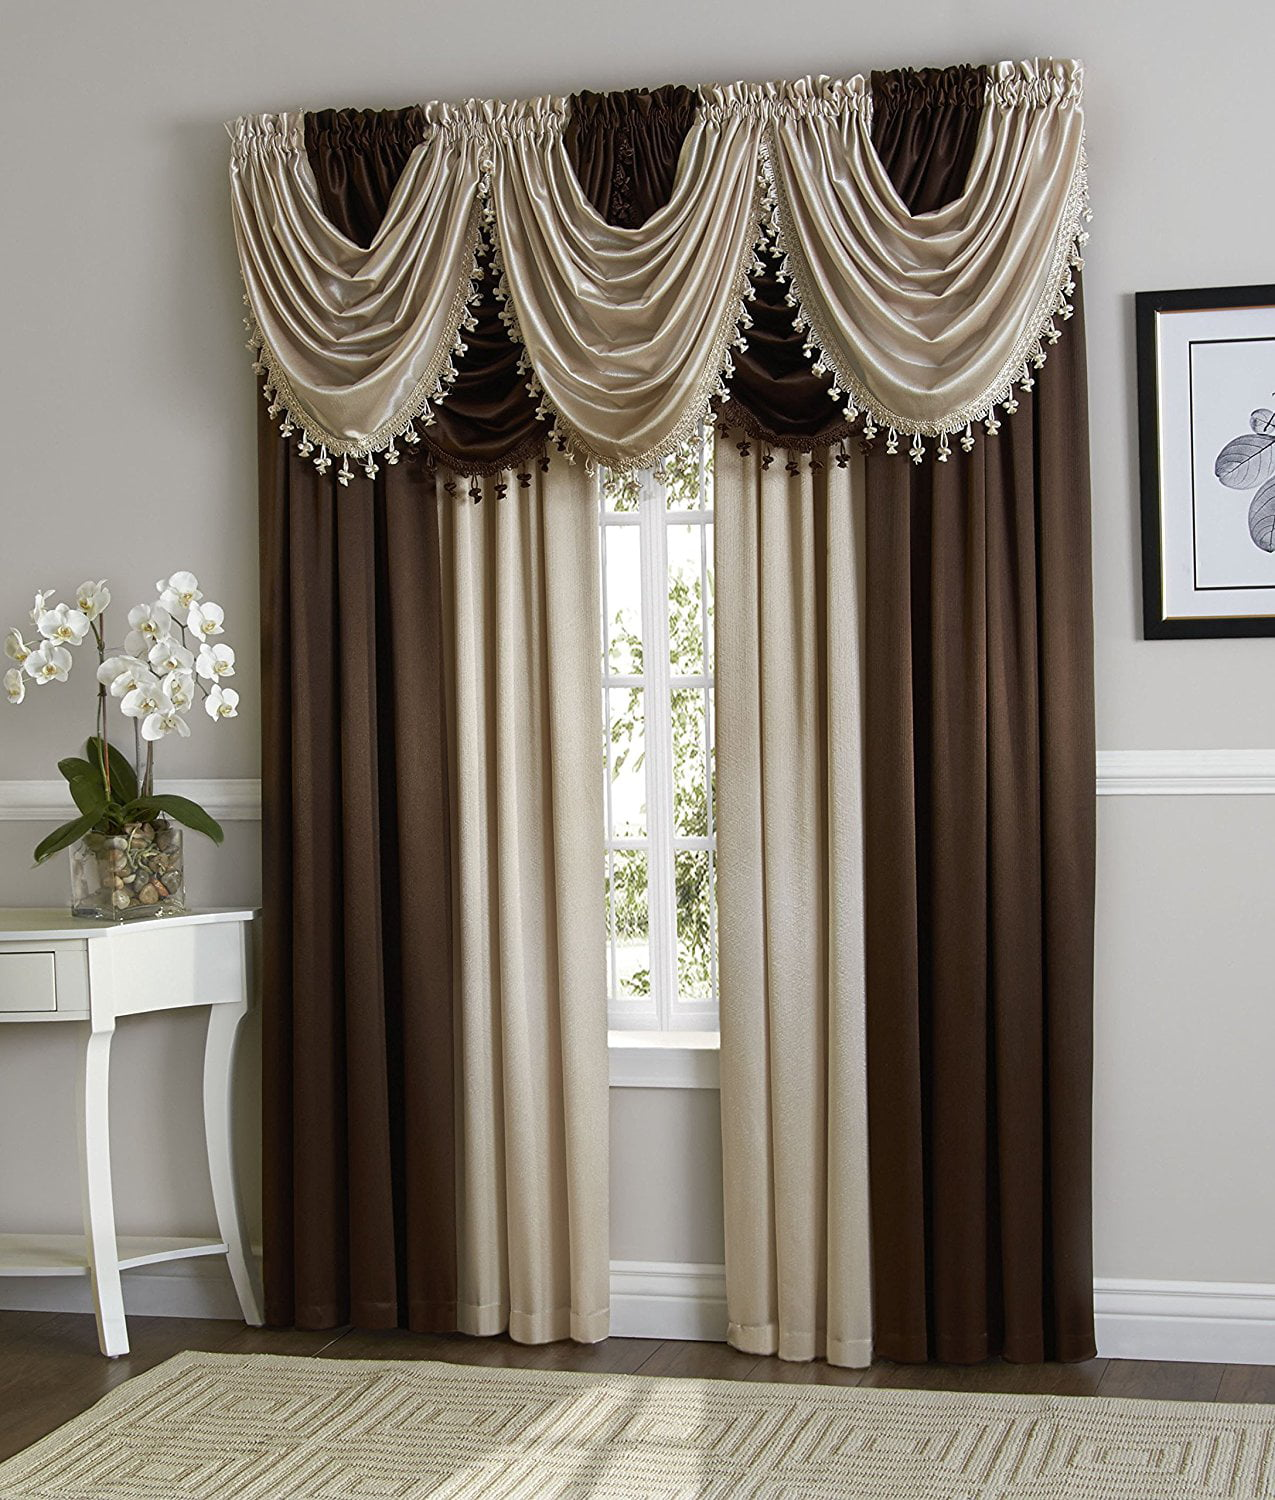 Hyatt Window Curtain & Fringed Valance Complete 9 Piece Window Treatment Set (Coffee Bean & Beige) by